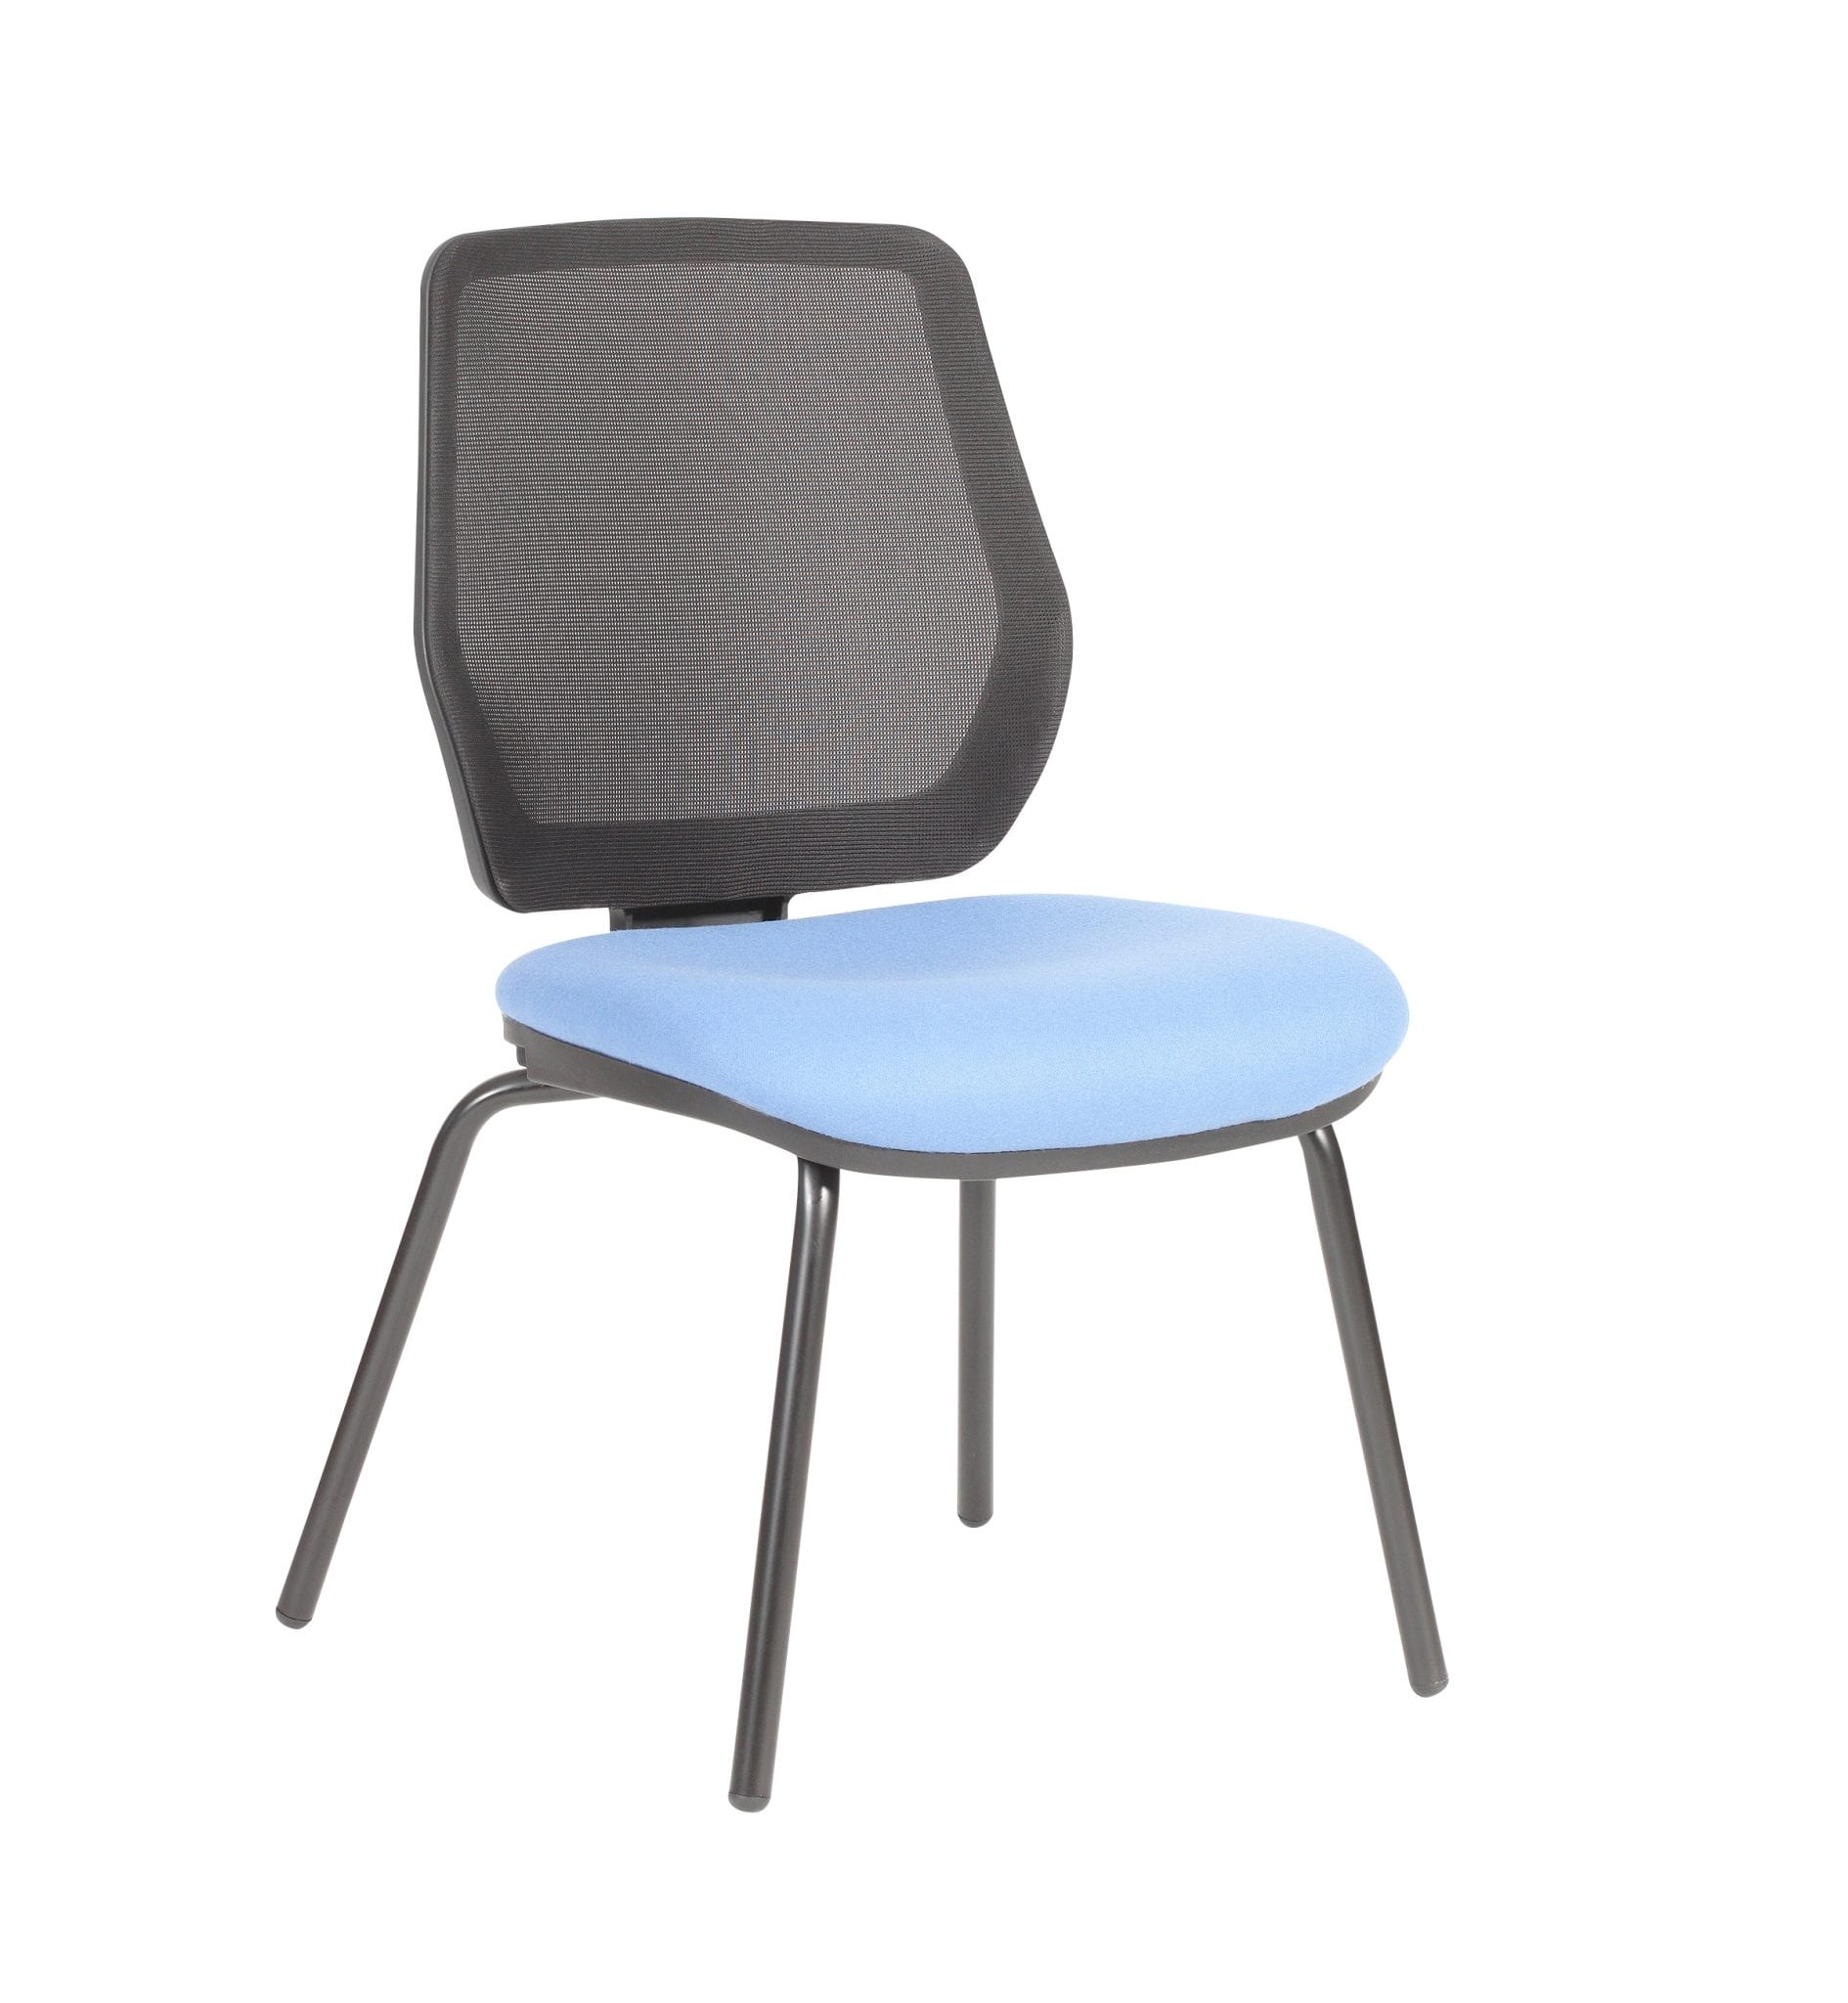 Ovair - OV40 - Meeting and visitor chairs – from Summit chairs